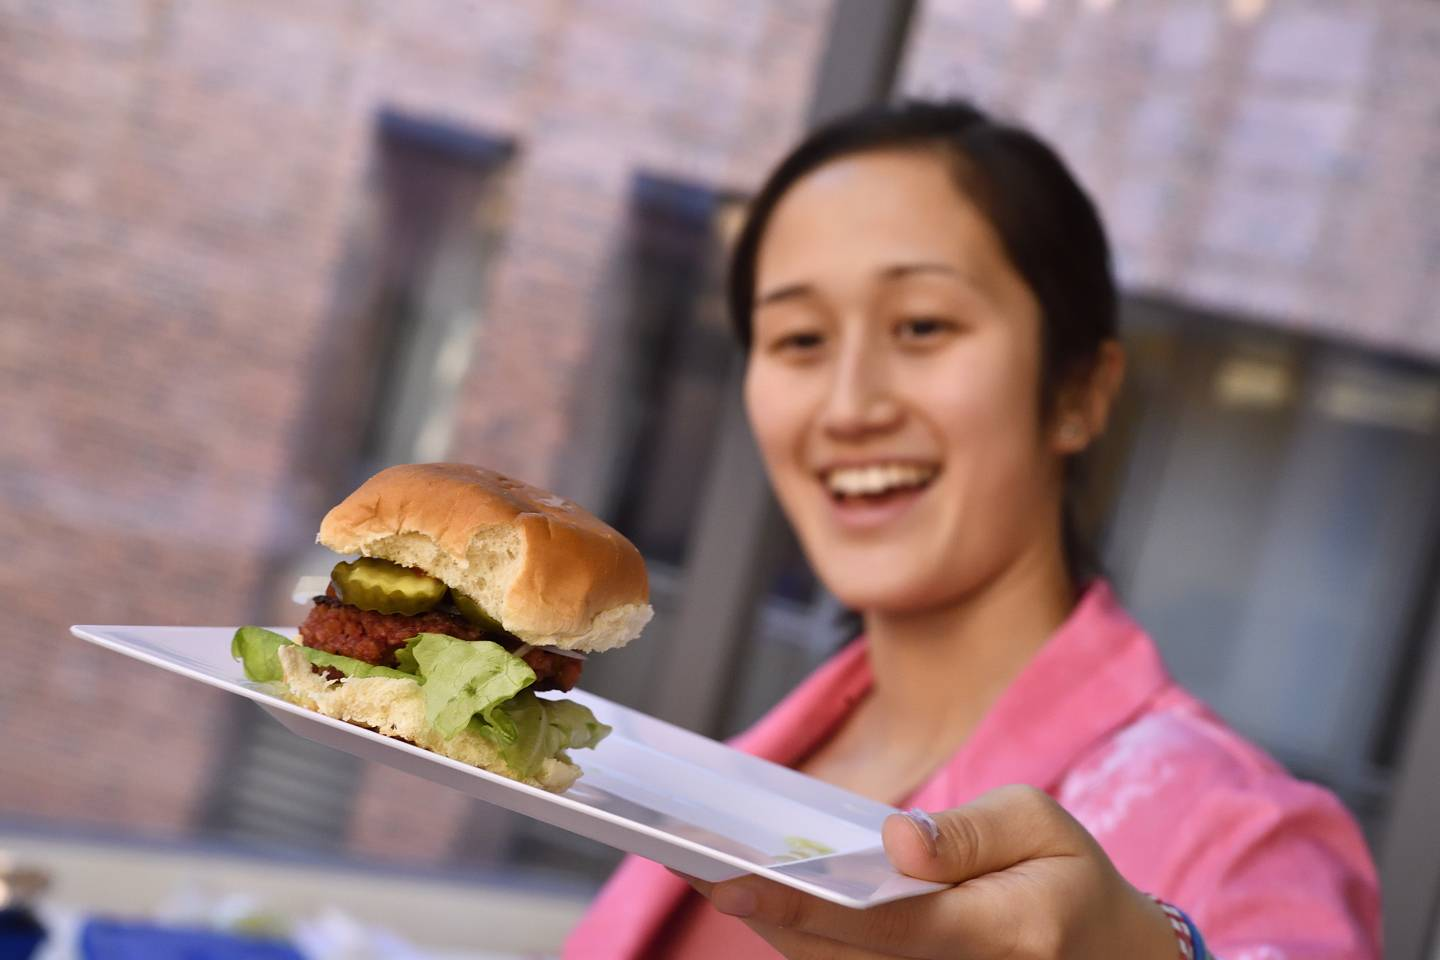 A student displays her burger slider